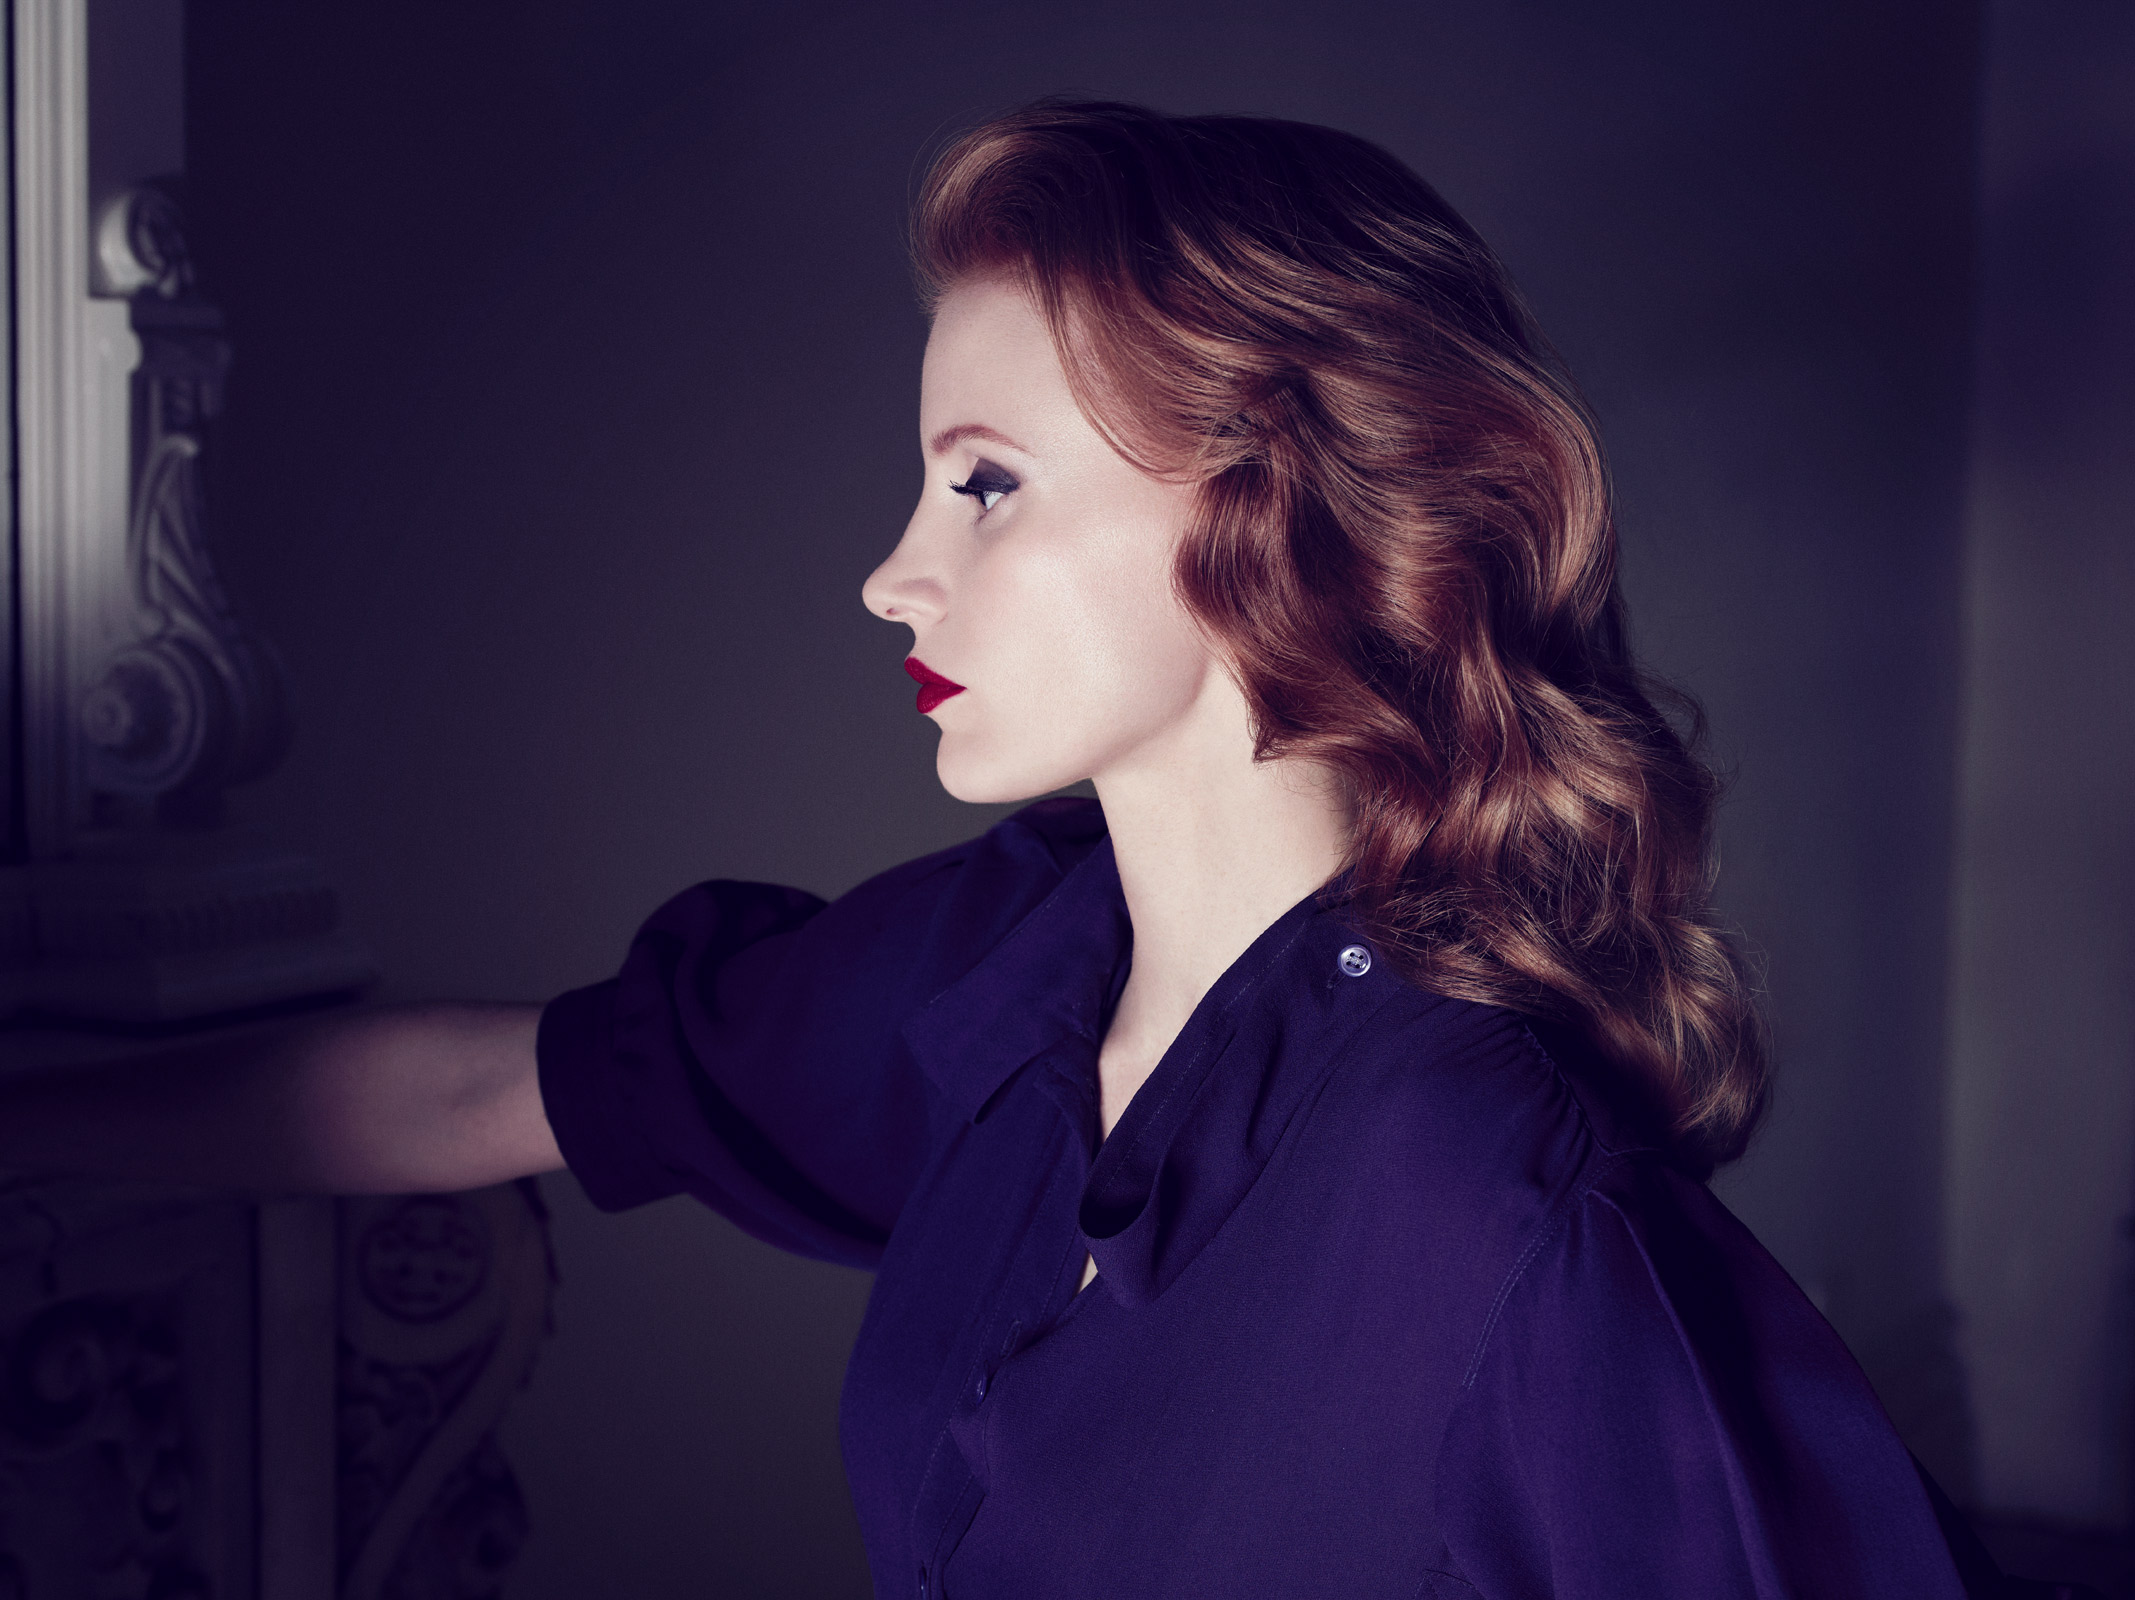 Jessica Chastain - YSL - In The Mood For Movies Jessica Chastain Movies